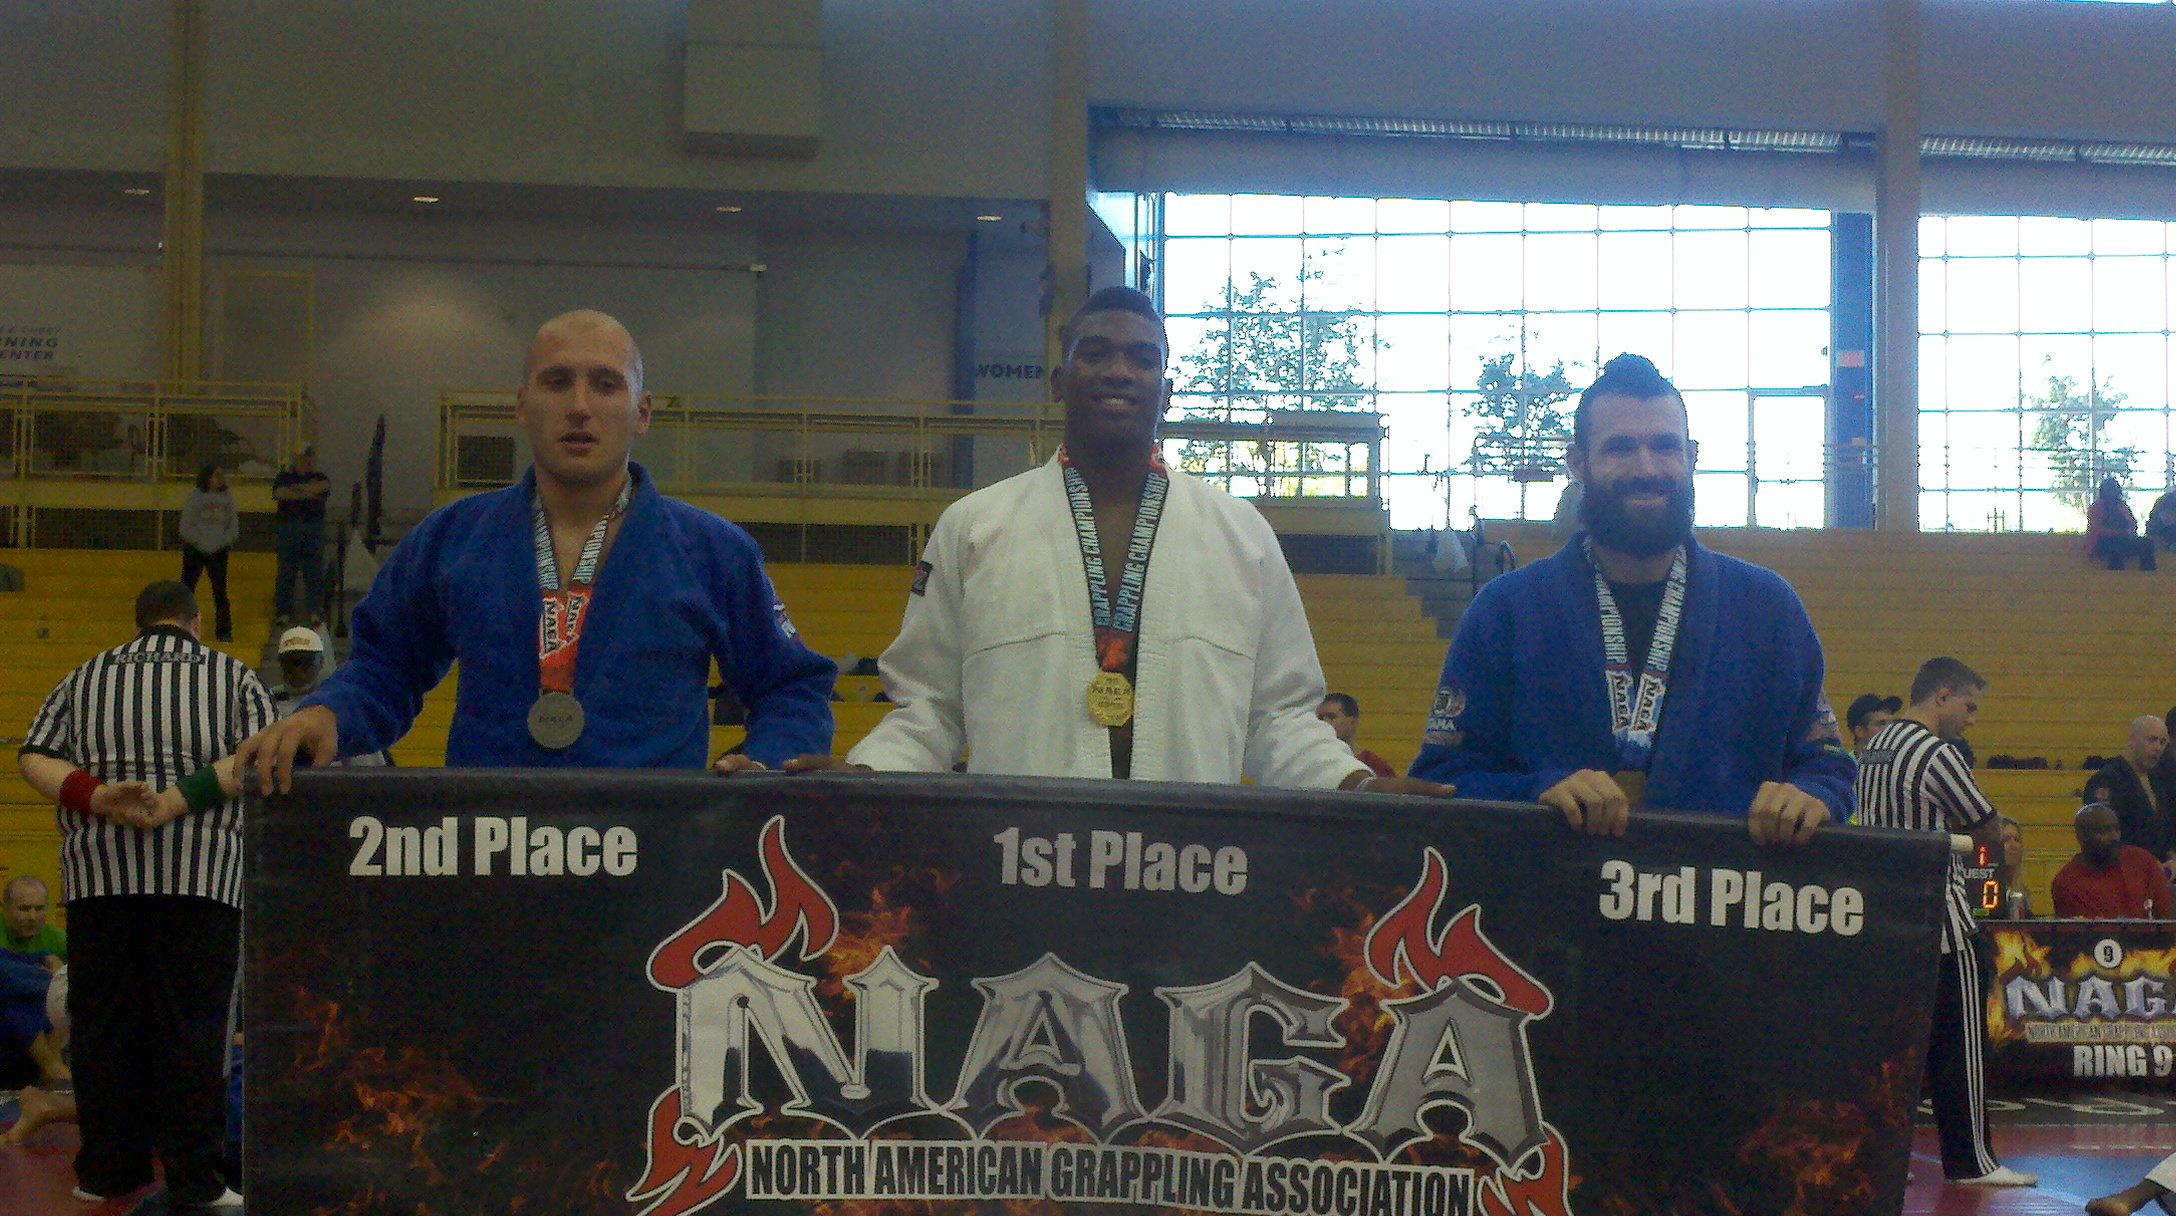 NAGA Tournament Maryland | Baltimore Martial Arts Academy